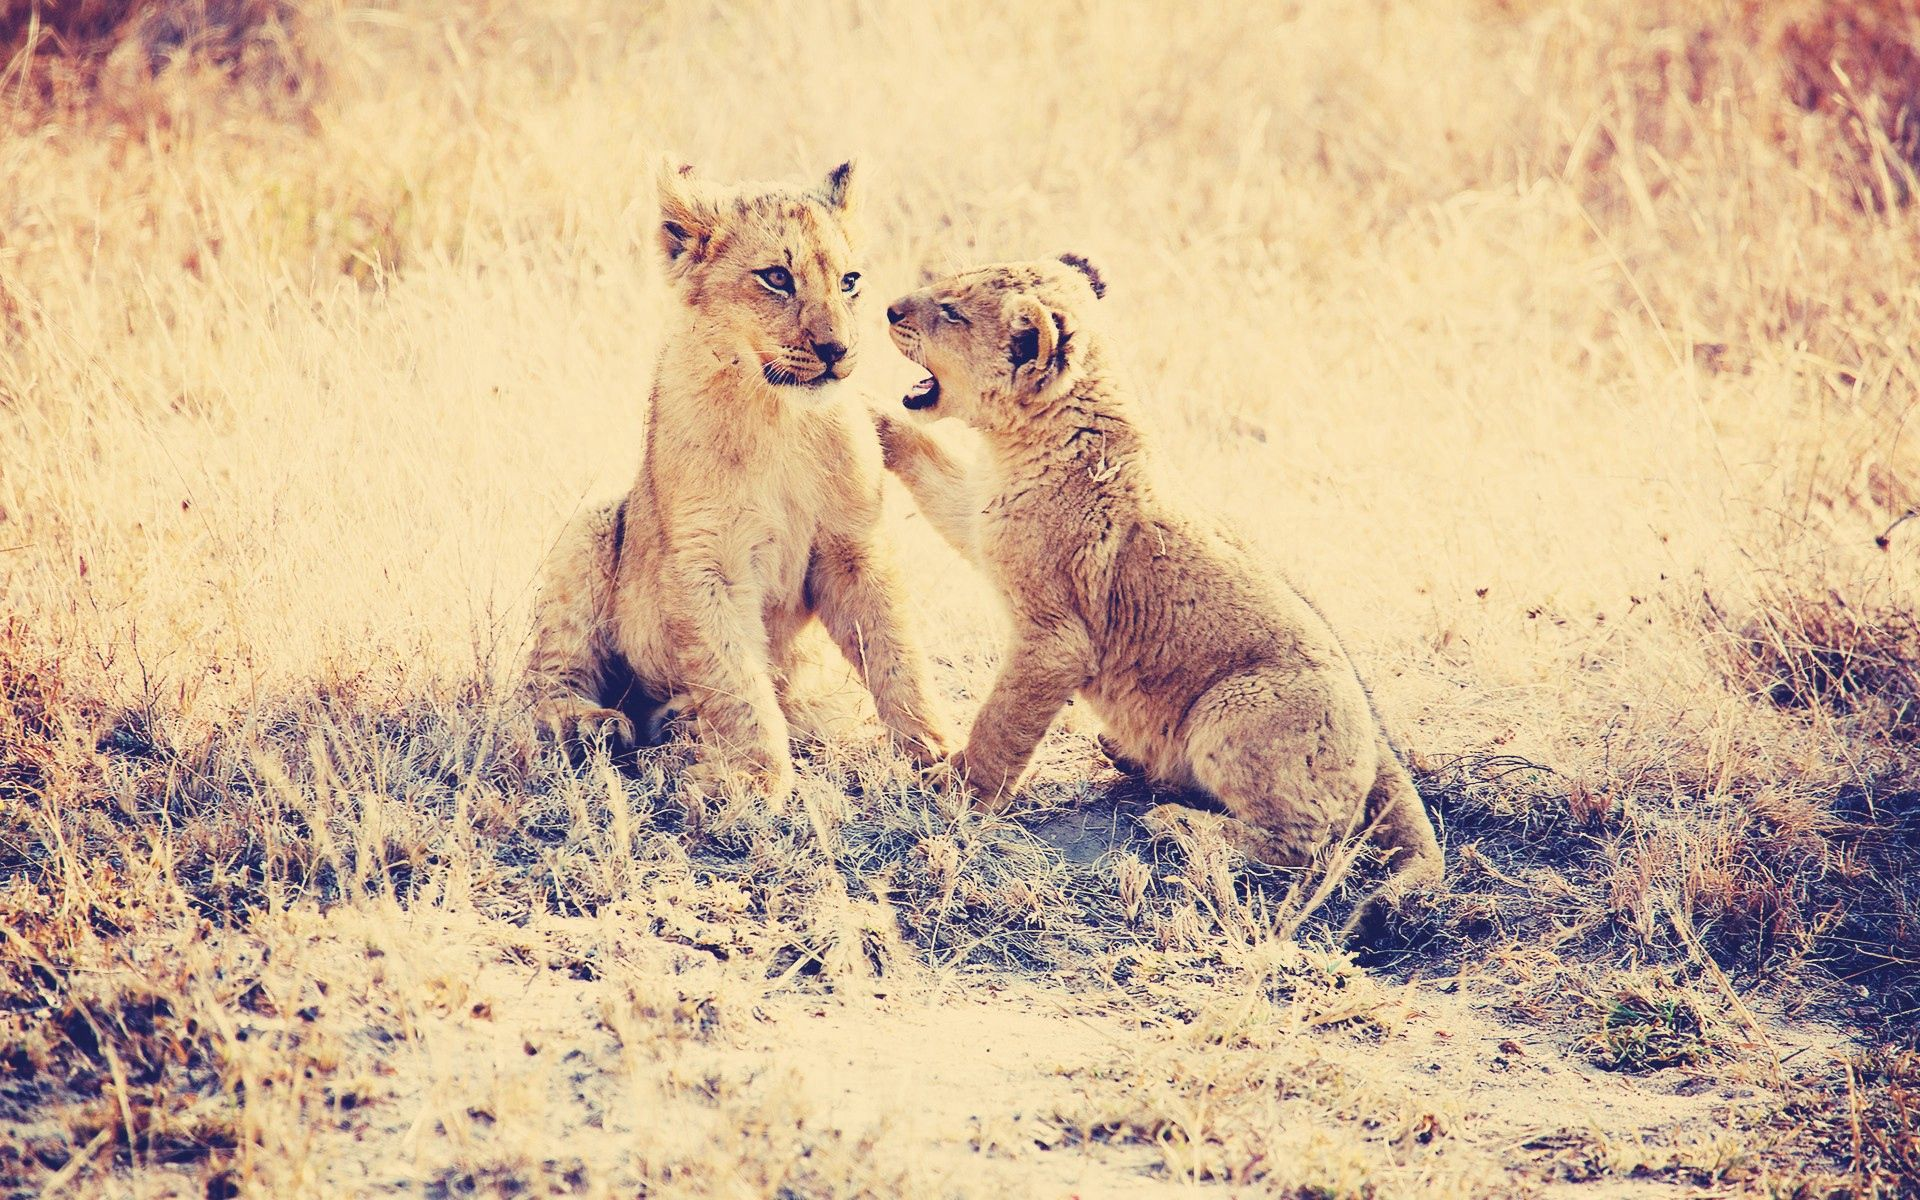 139920 download wallpaper Animals, Cubs, Young, Grass, Playful, Predators, Lions screensavers and pictures for free